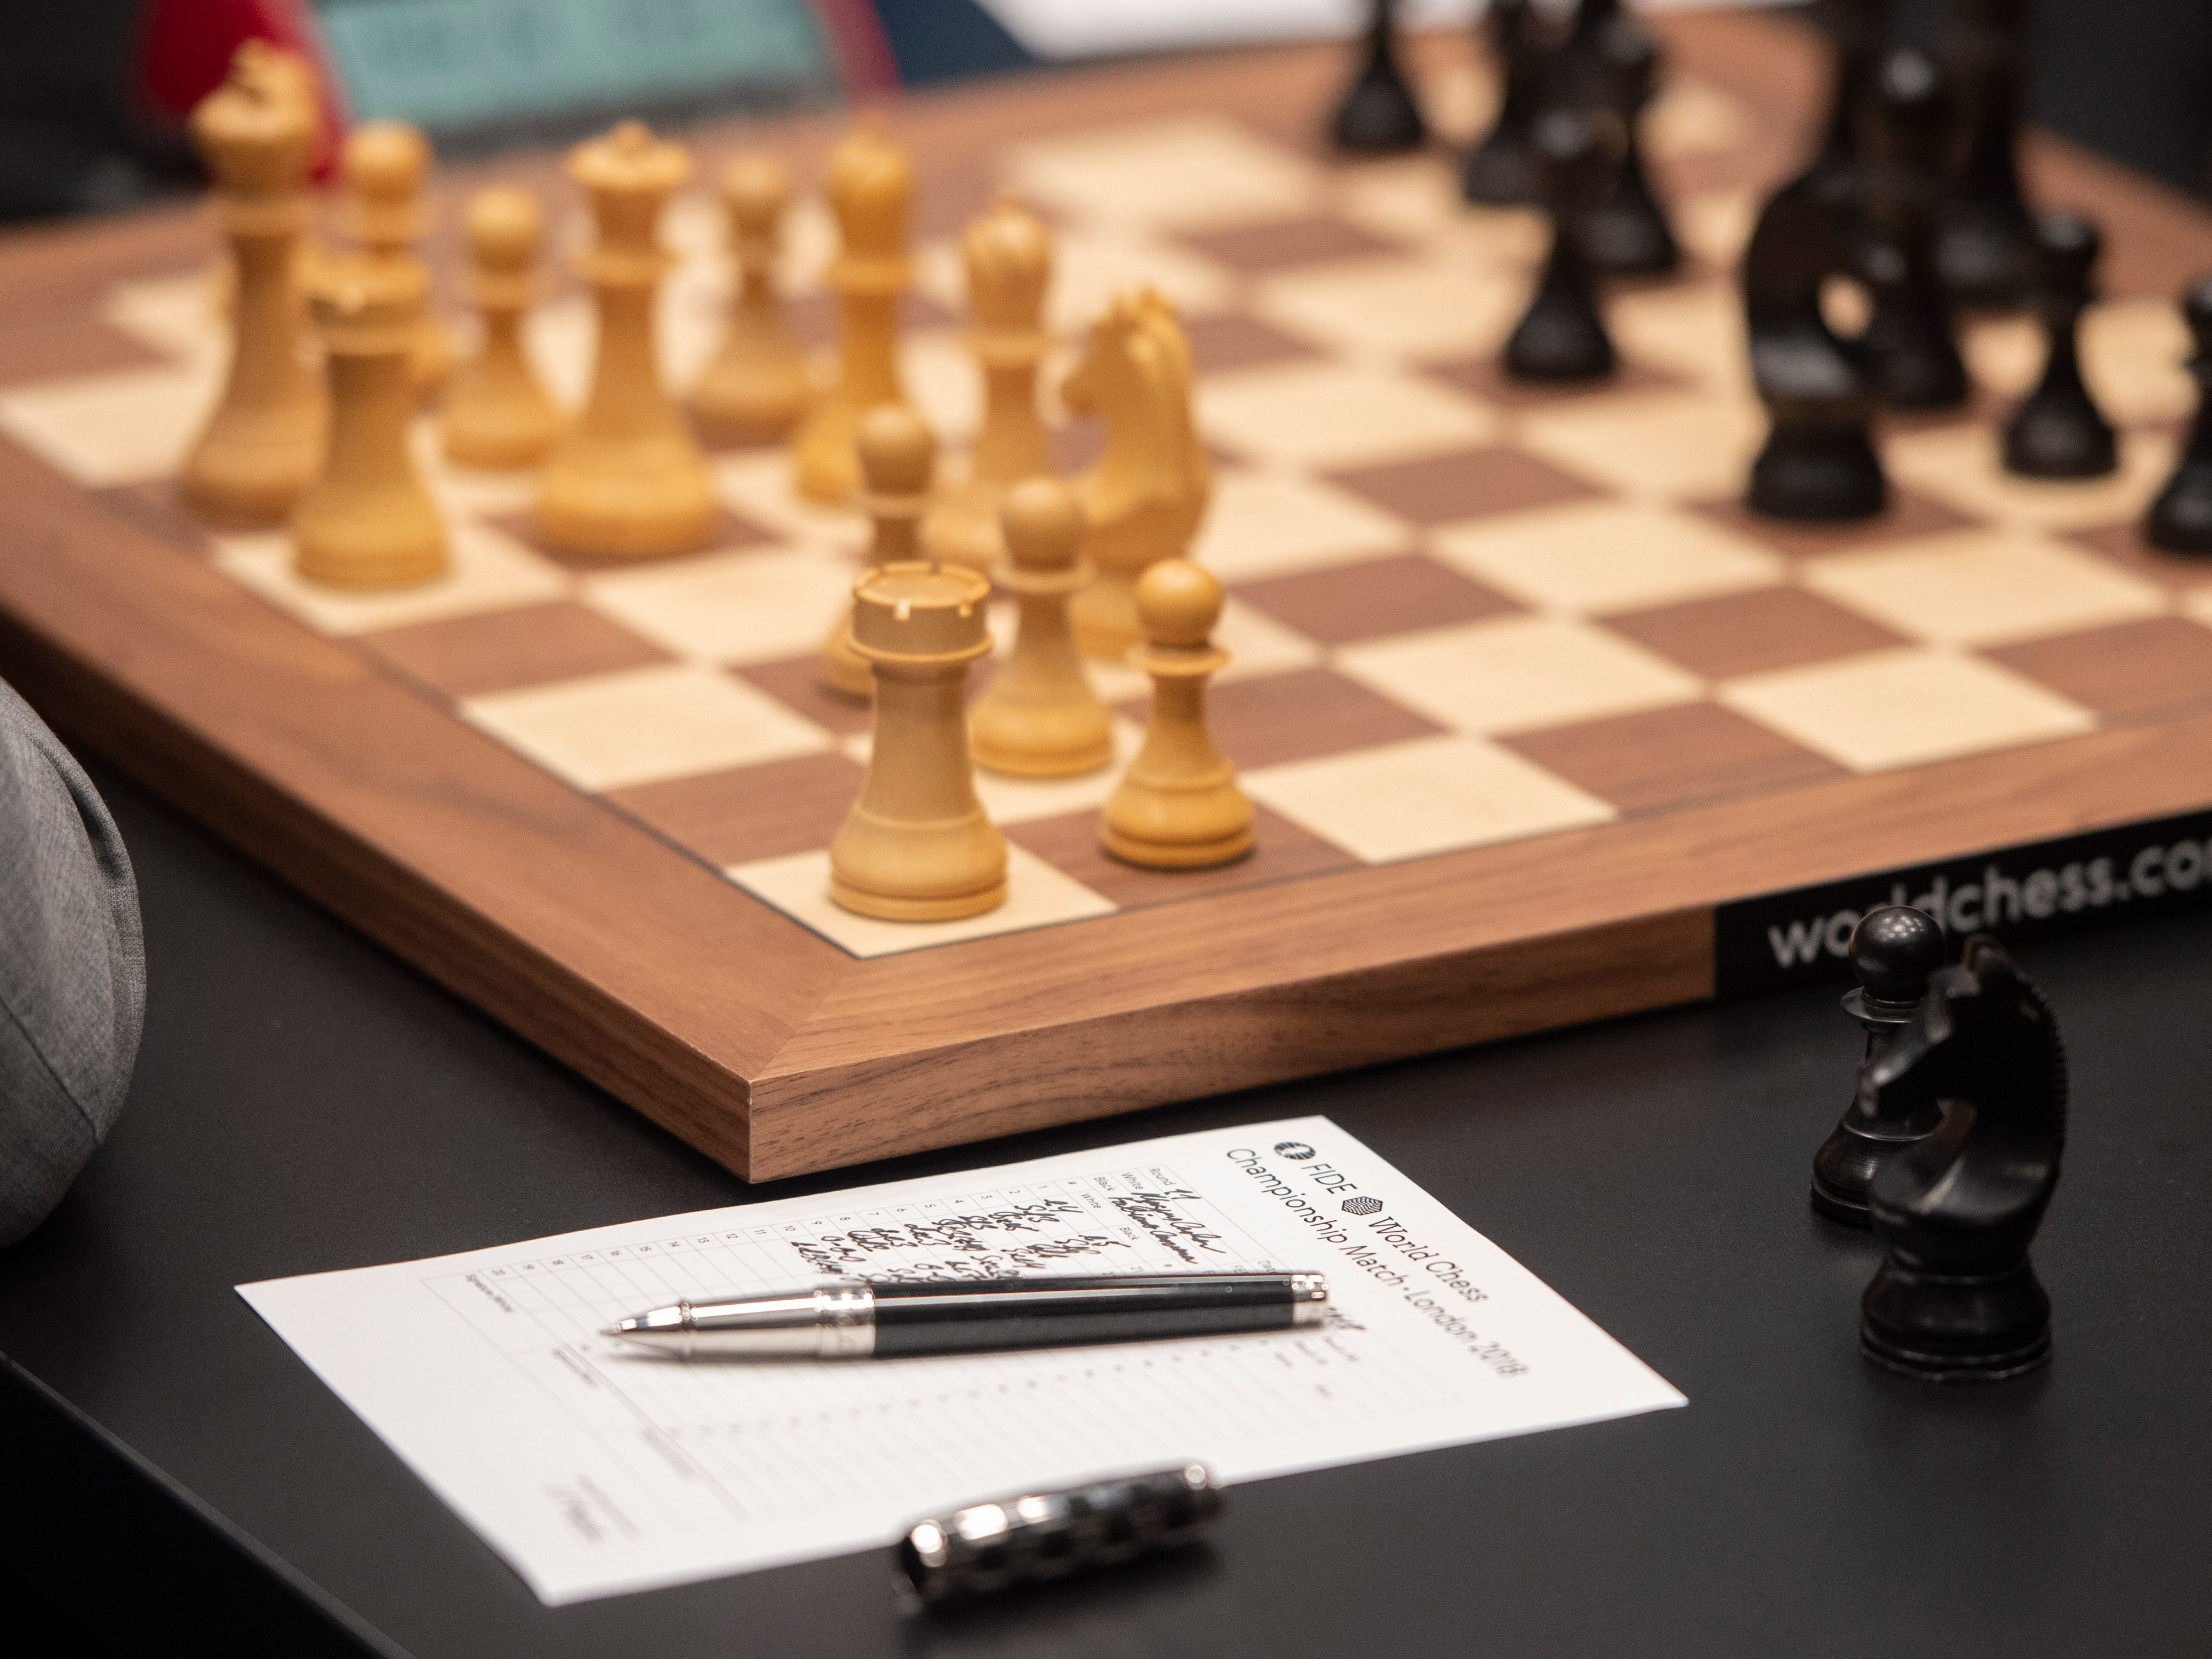 Reigning chess world champion Magnus Carlsen's notes are seen as he plays against American challenger Fabiano Caruana in their round 11 game during the World Chess Championship, Nov. 24, 2018, in London.